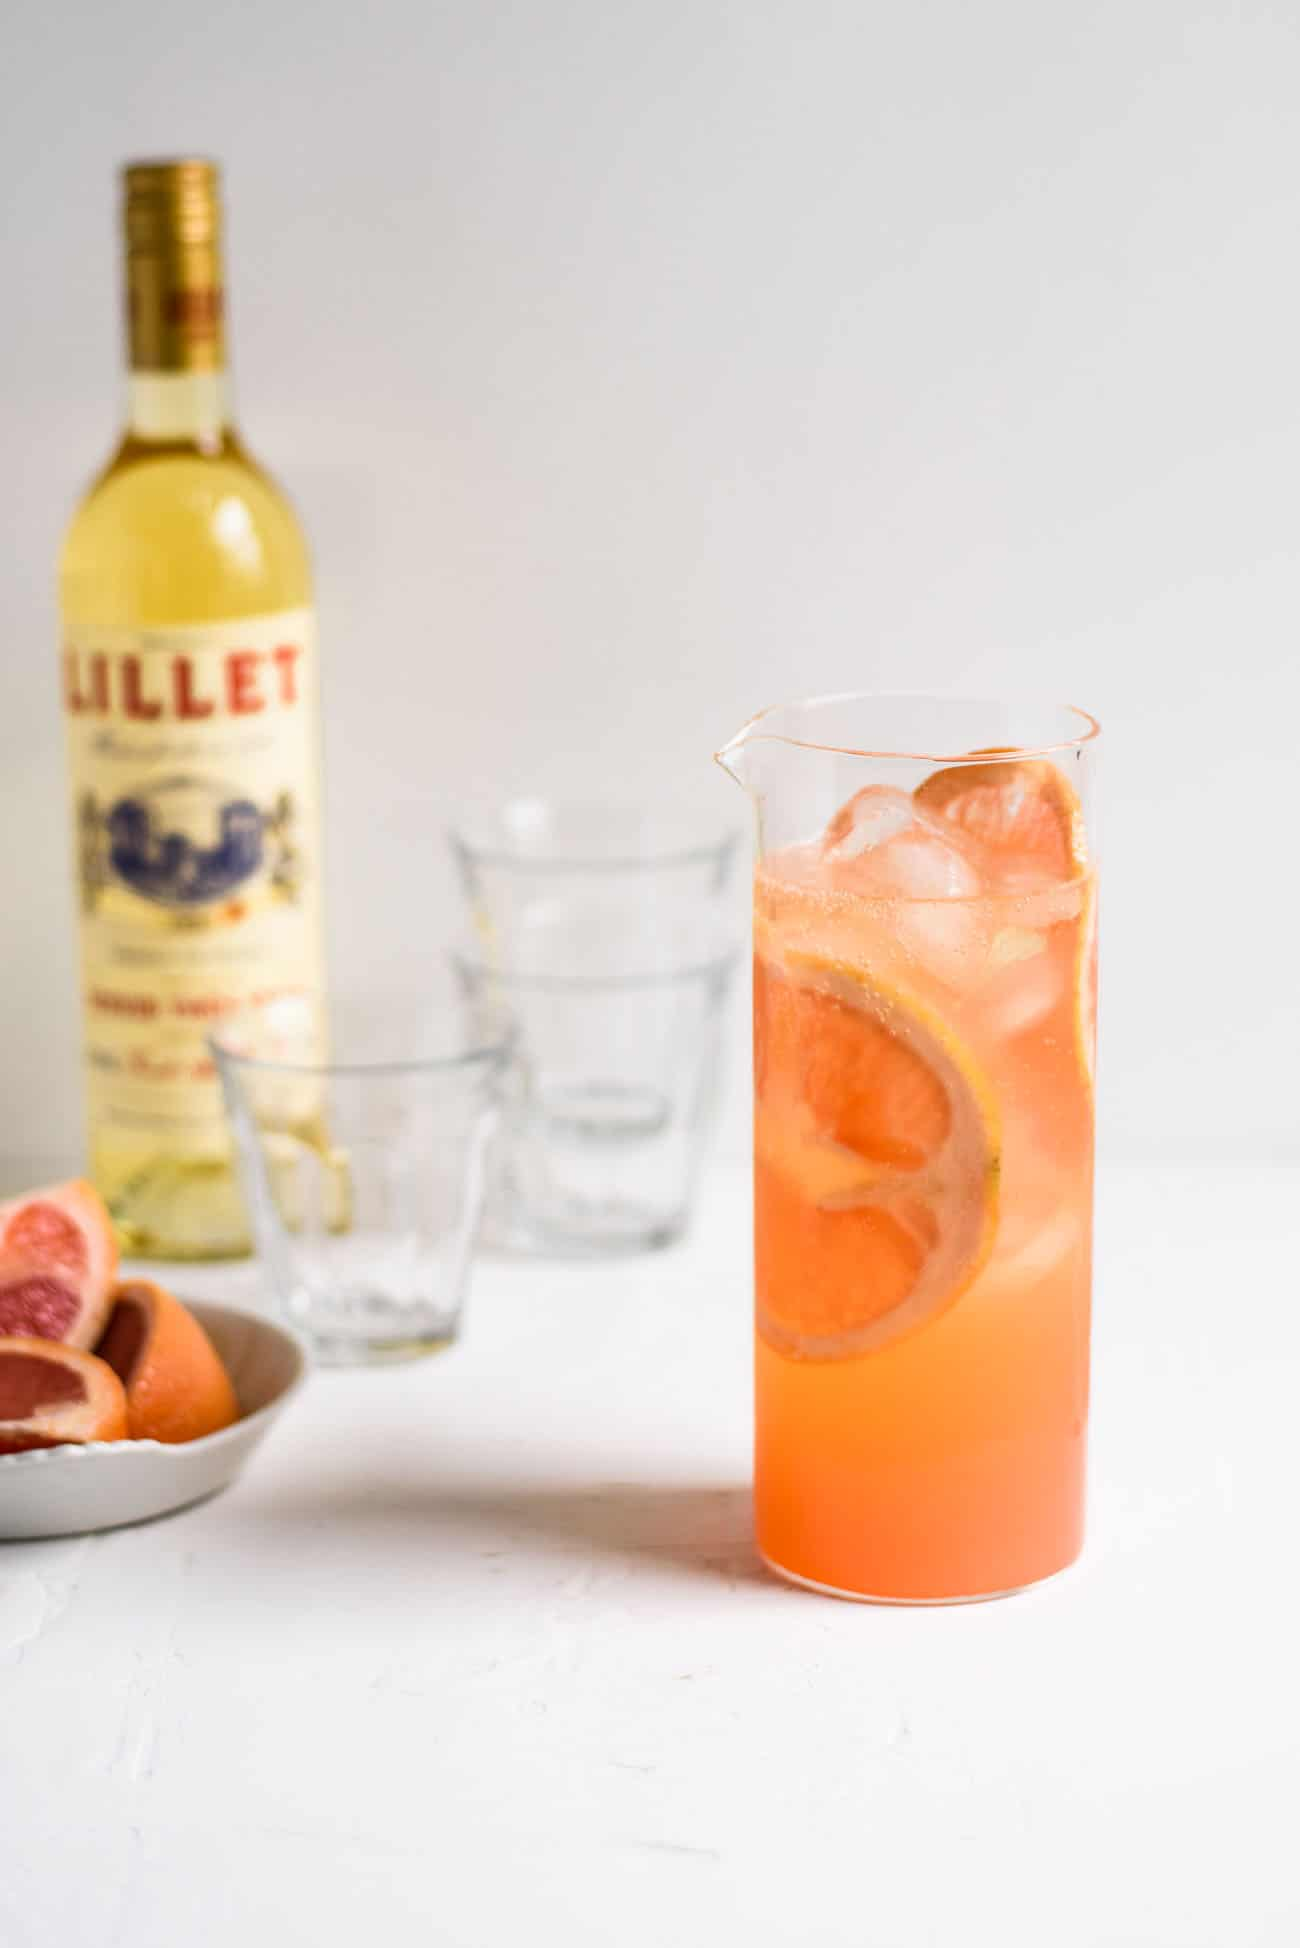 Grapefruit-Lillet Spritzer in a glass pitcher next to bottle of Lillet and grapefruit slices